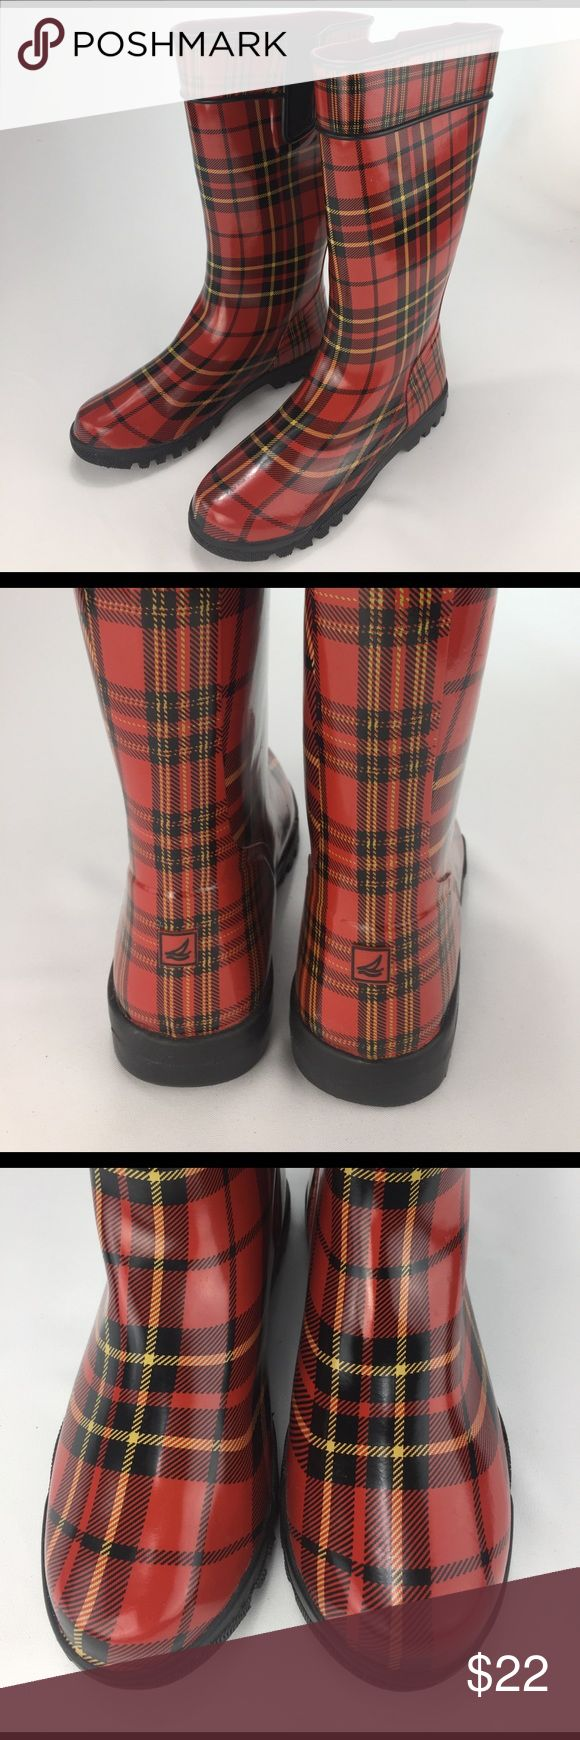 SPERRY TOP-SIDER boots! SPERRY TOP-SIDER boots! Size 9M. EUC. See pics! Sperry Top-Sider Shoes Winter & Rain Boots